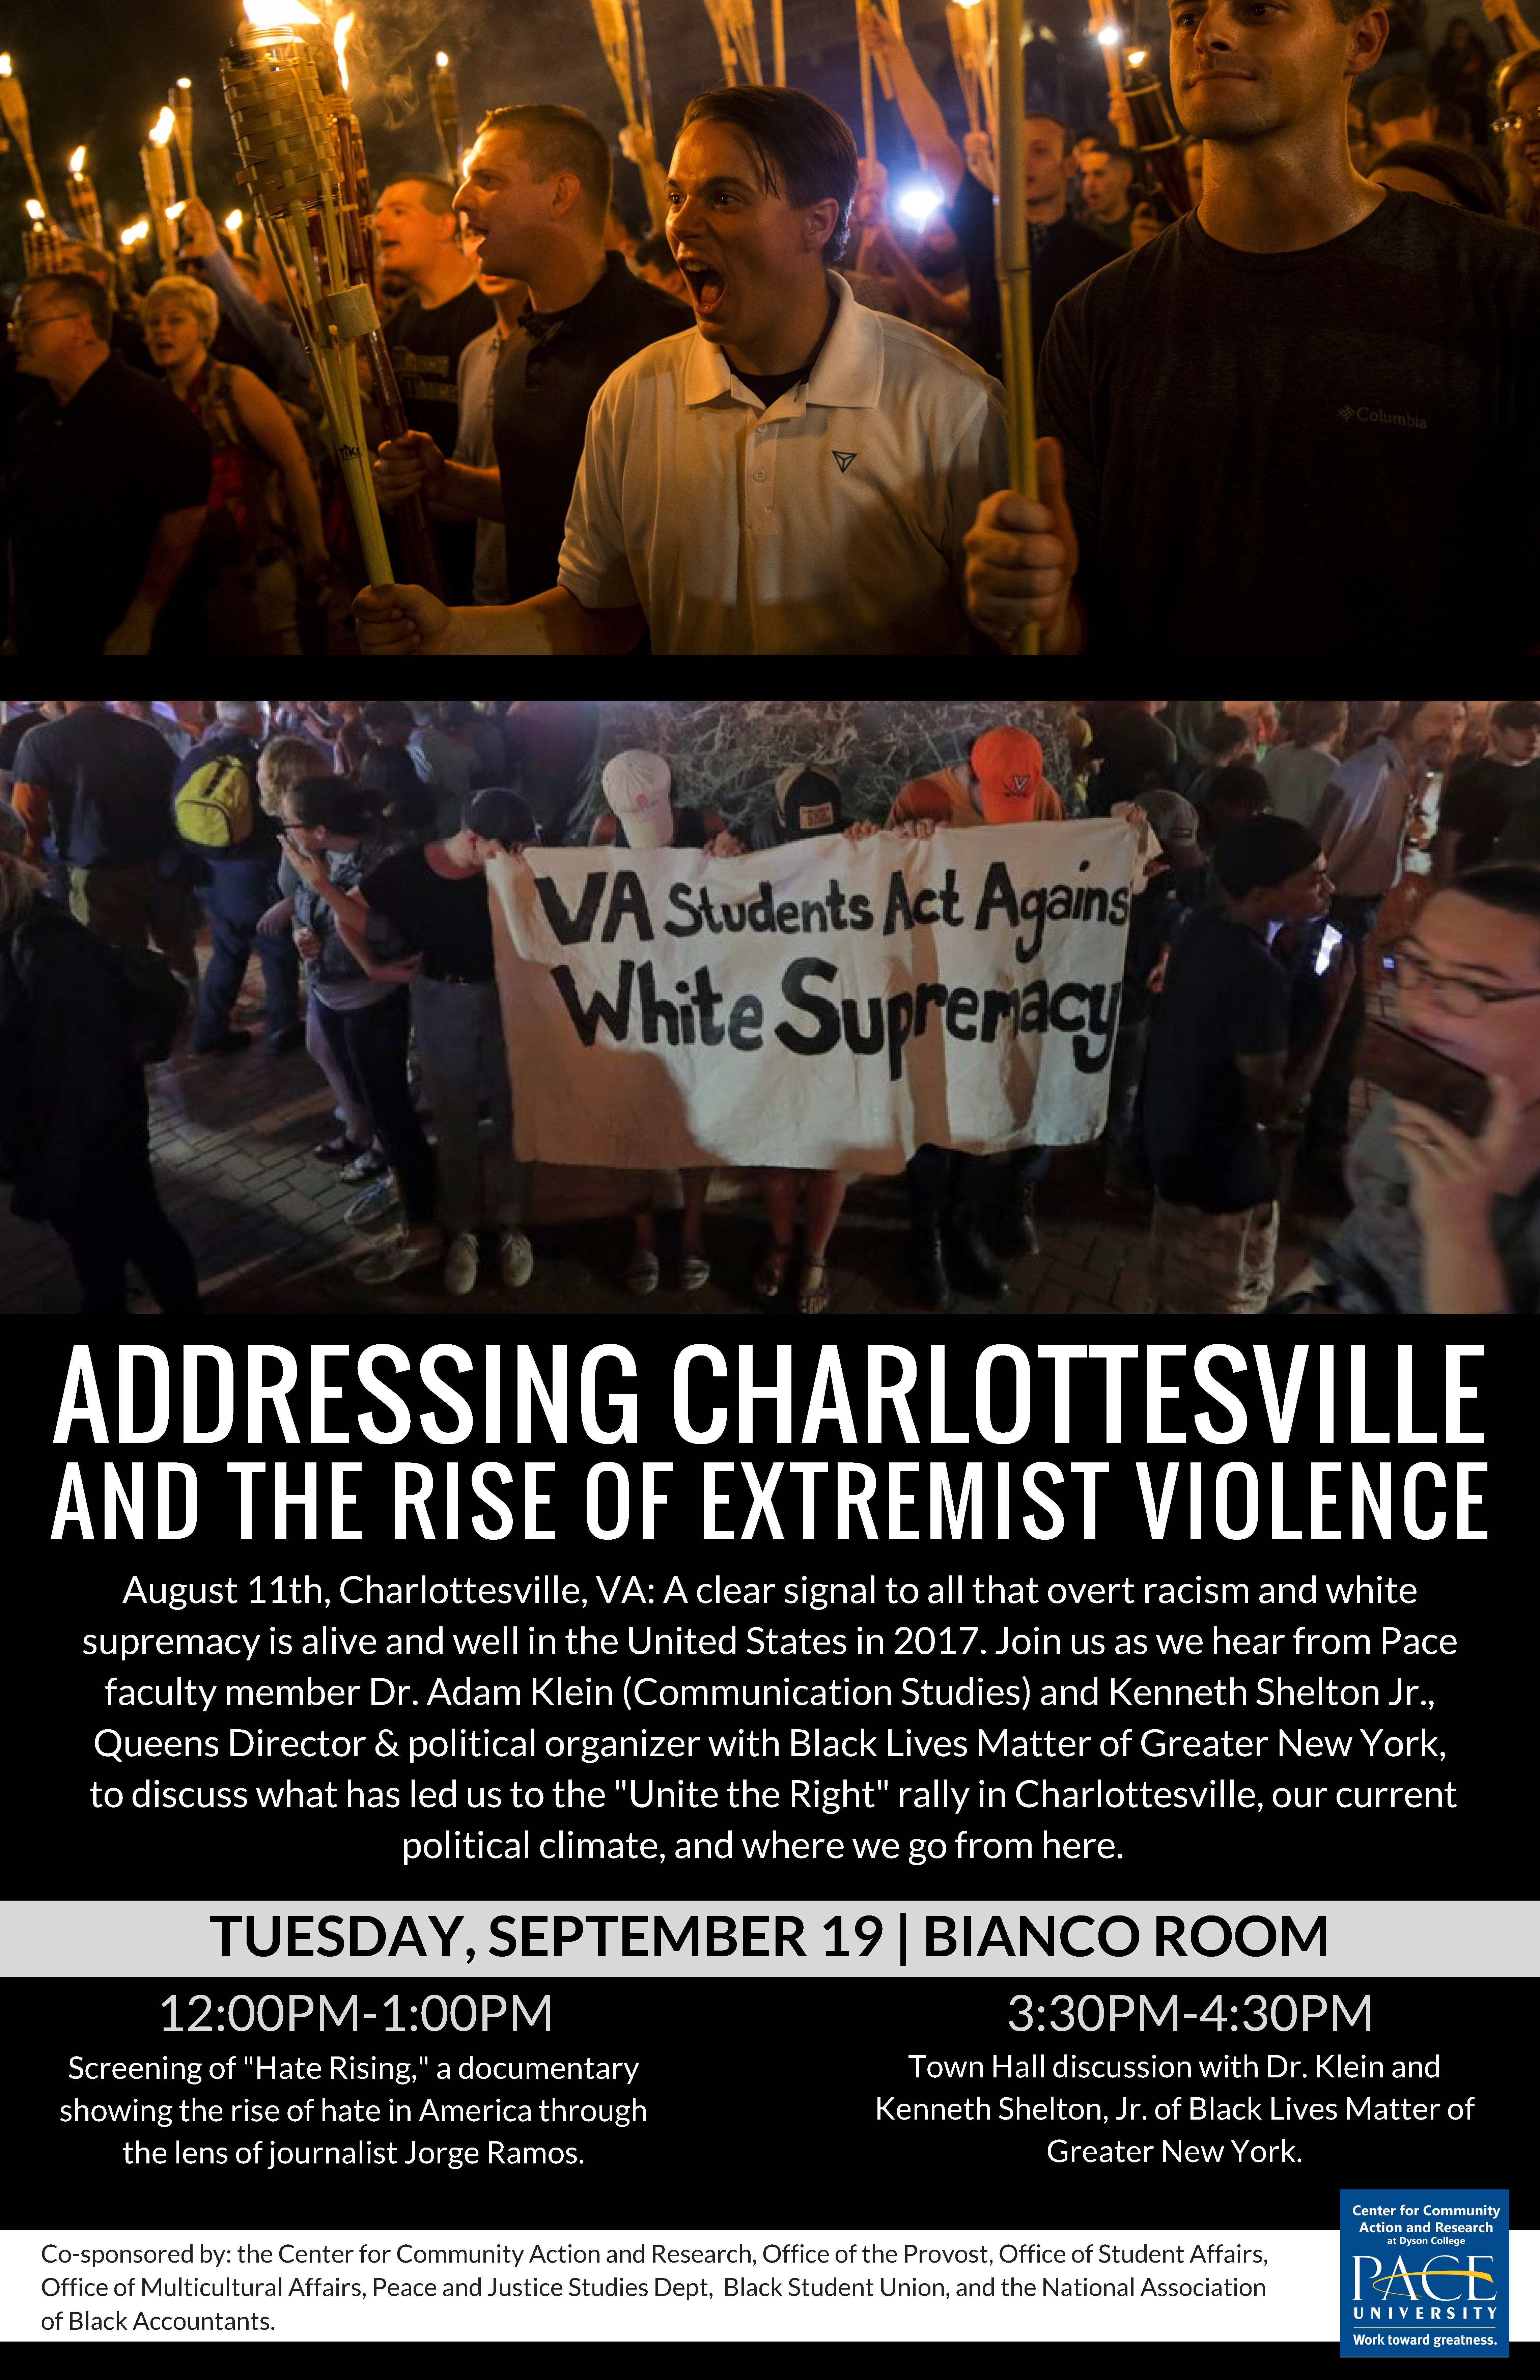 Information regarding Addressing Charlottesville is as follows Start date is September 13 2017 and End Date is September 20 2017 and Name of Ad/Event is Addressing Charlottesville and File is Browse and Group Name is Dean For Students Office and Affiliation is Department and File Name is Addressing-Charlottesville-11x1_comp.jpg and Name is Rachel Craig and Email is rc97553n@pace.edu and Panel is Side and